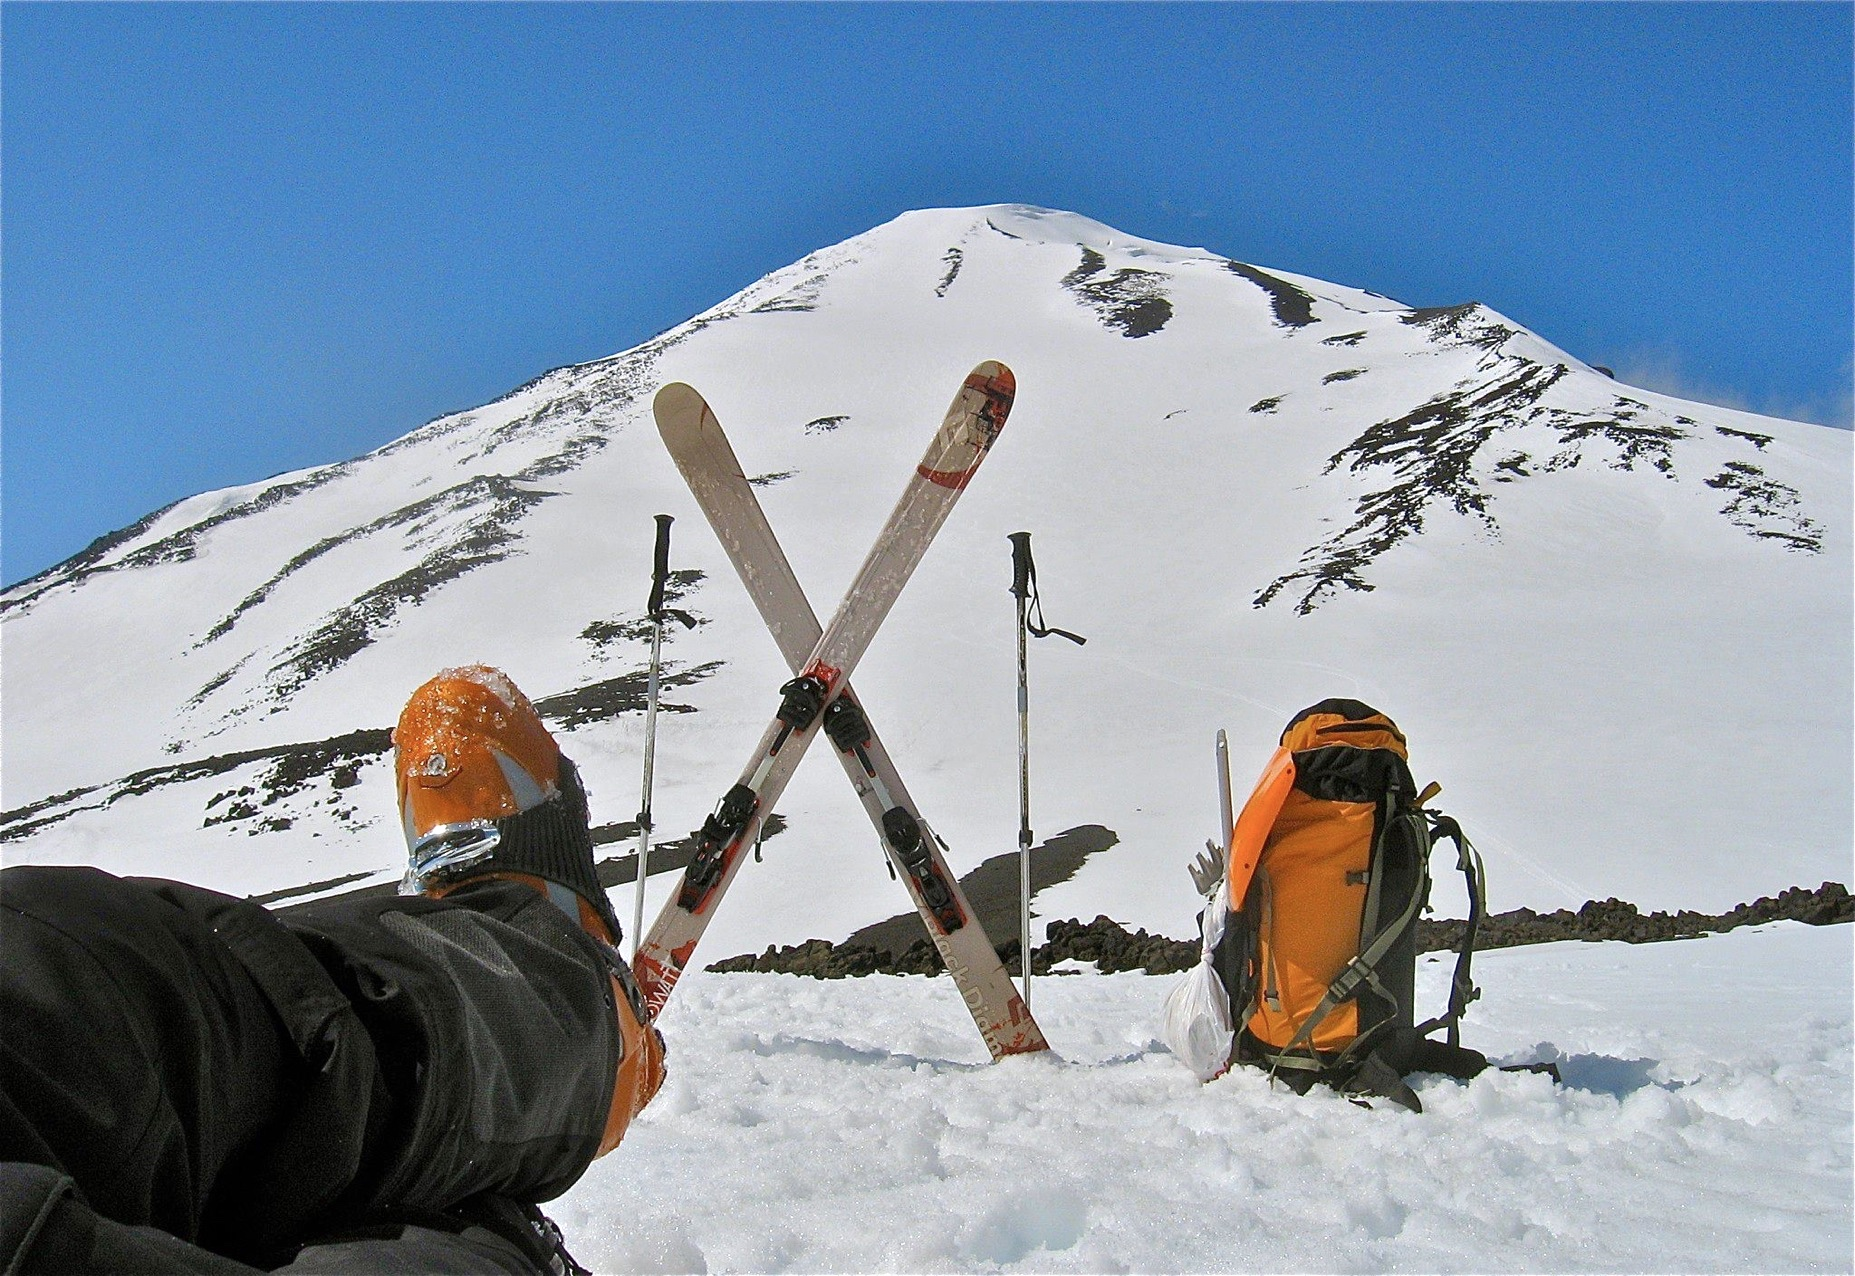 Ski Touring on Mt. Adams, WA